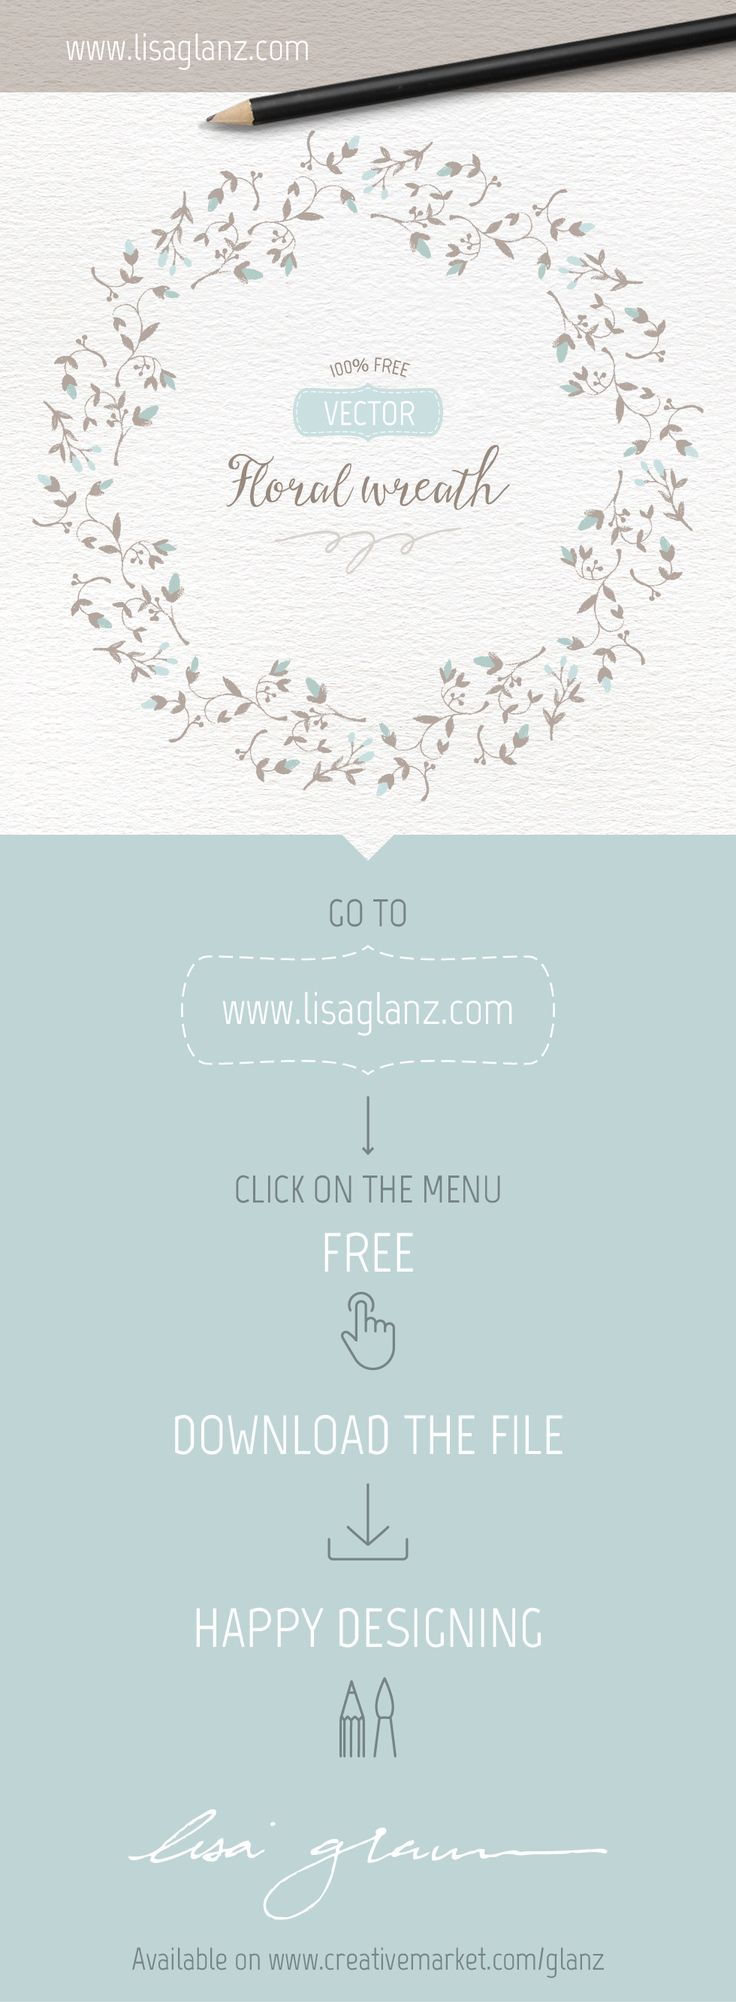 The best images about flowers on pinterest drawings icon